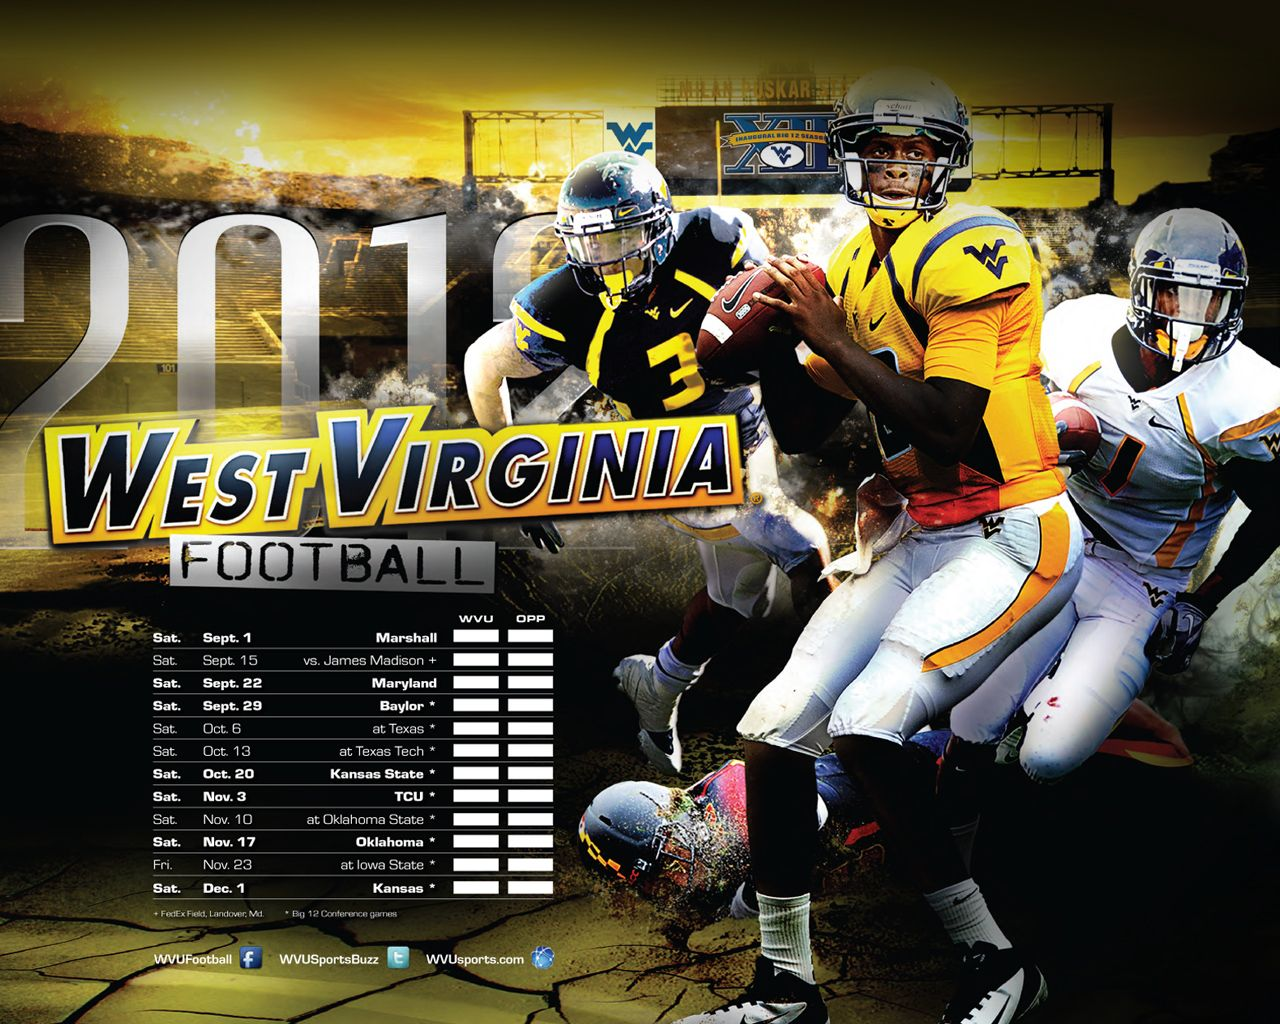 2012 Football Poster Download It As Wallpaper For Your Computer At Http Www Wvusports Com Wallpaper Cfm O Wvu Football Football Poster Football Wallpaper